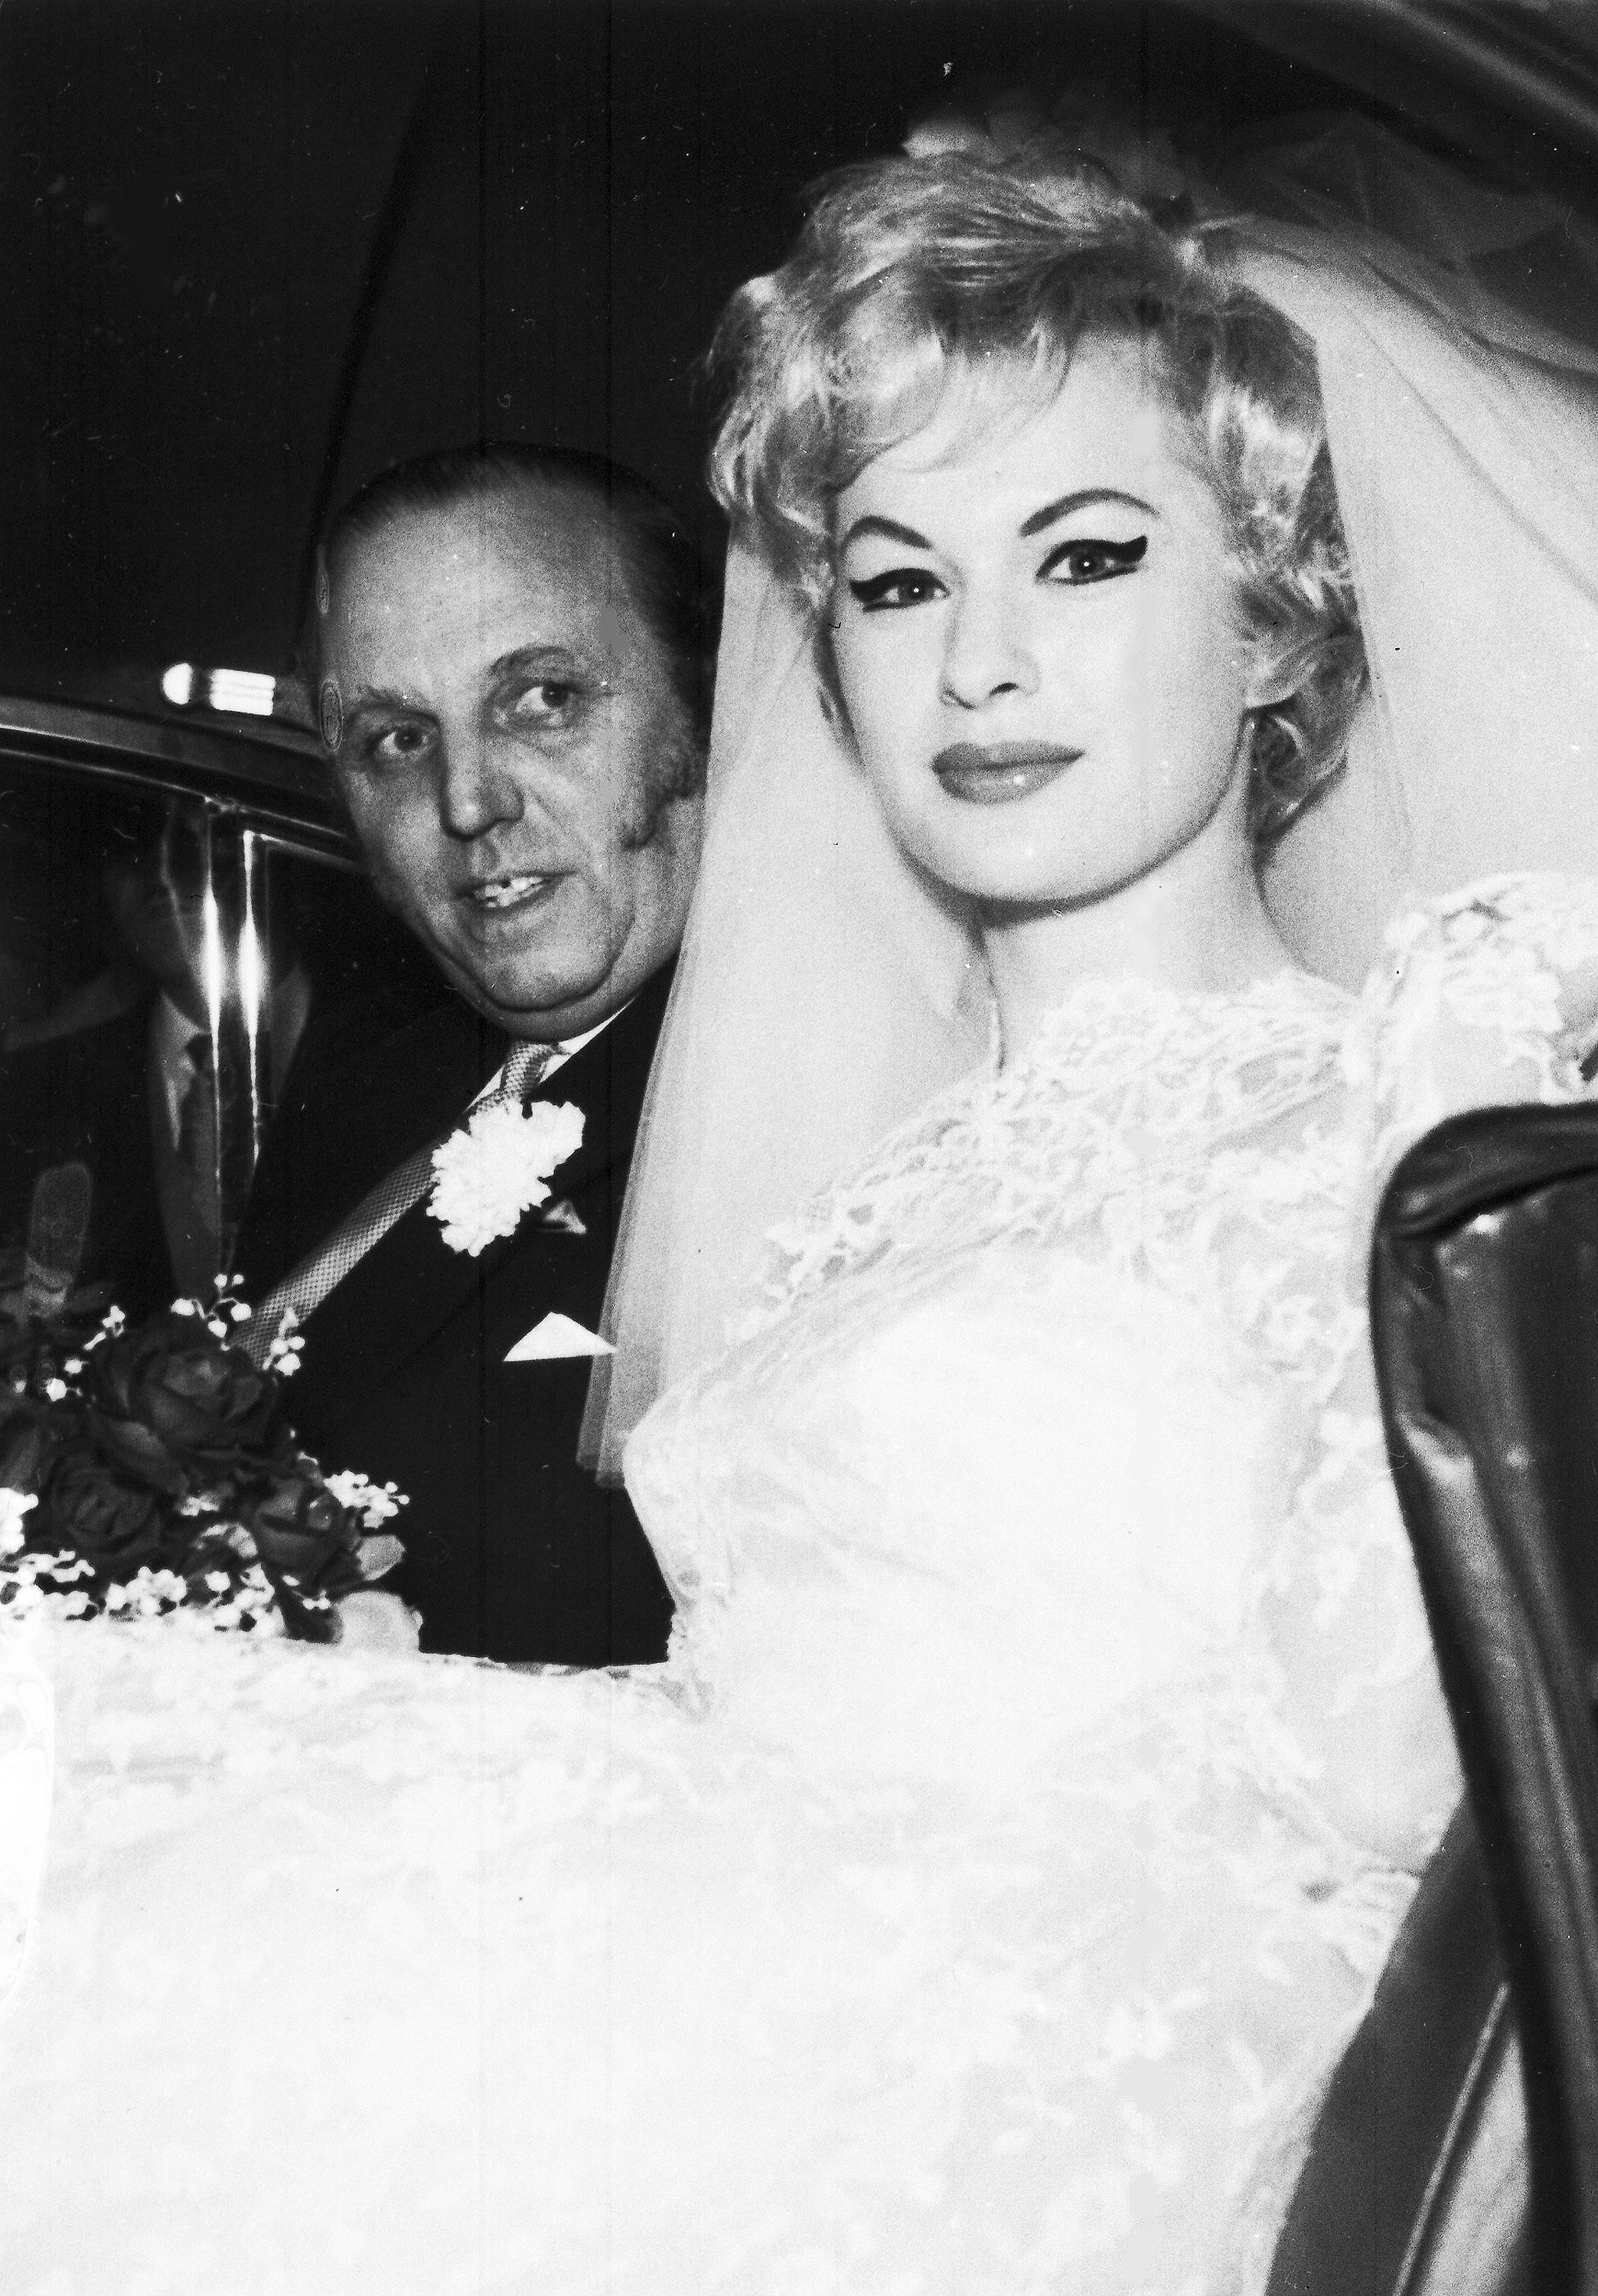 "Antique dealer and night club owner Horace Dibben, 54, with his bride former Mariella Novotny, an 18-year-old night club dancer, after their wedding at Caxton hall, London, Jan. 29, 1960. Christine Keeler later recalled: ""She had a tiny waist that exaggerated her ample figure. She was a siren, a sexual athlete of Olympian proportions - she could do it all. I know. I saw her in action. She knew all the strange pleasures that were wanted and could deliver them."" (AP Photo)"